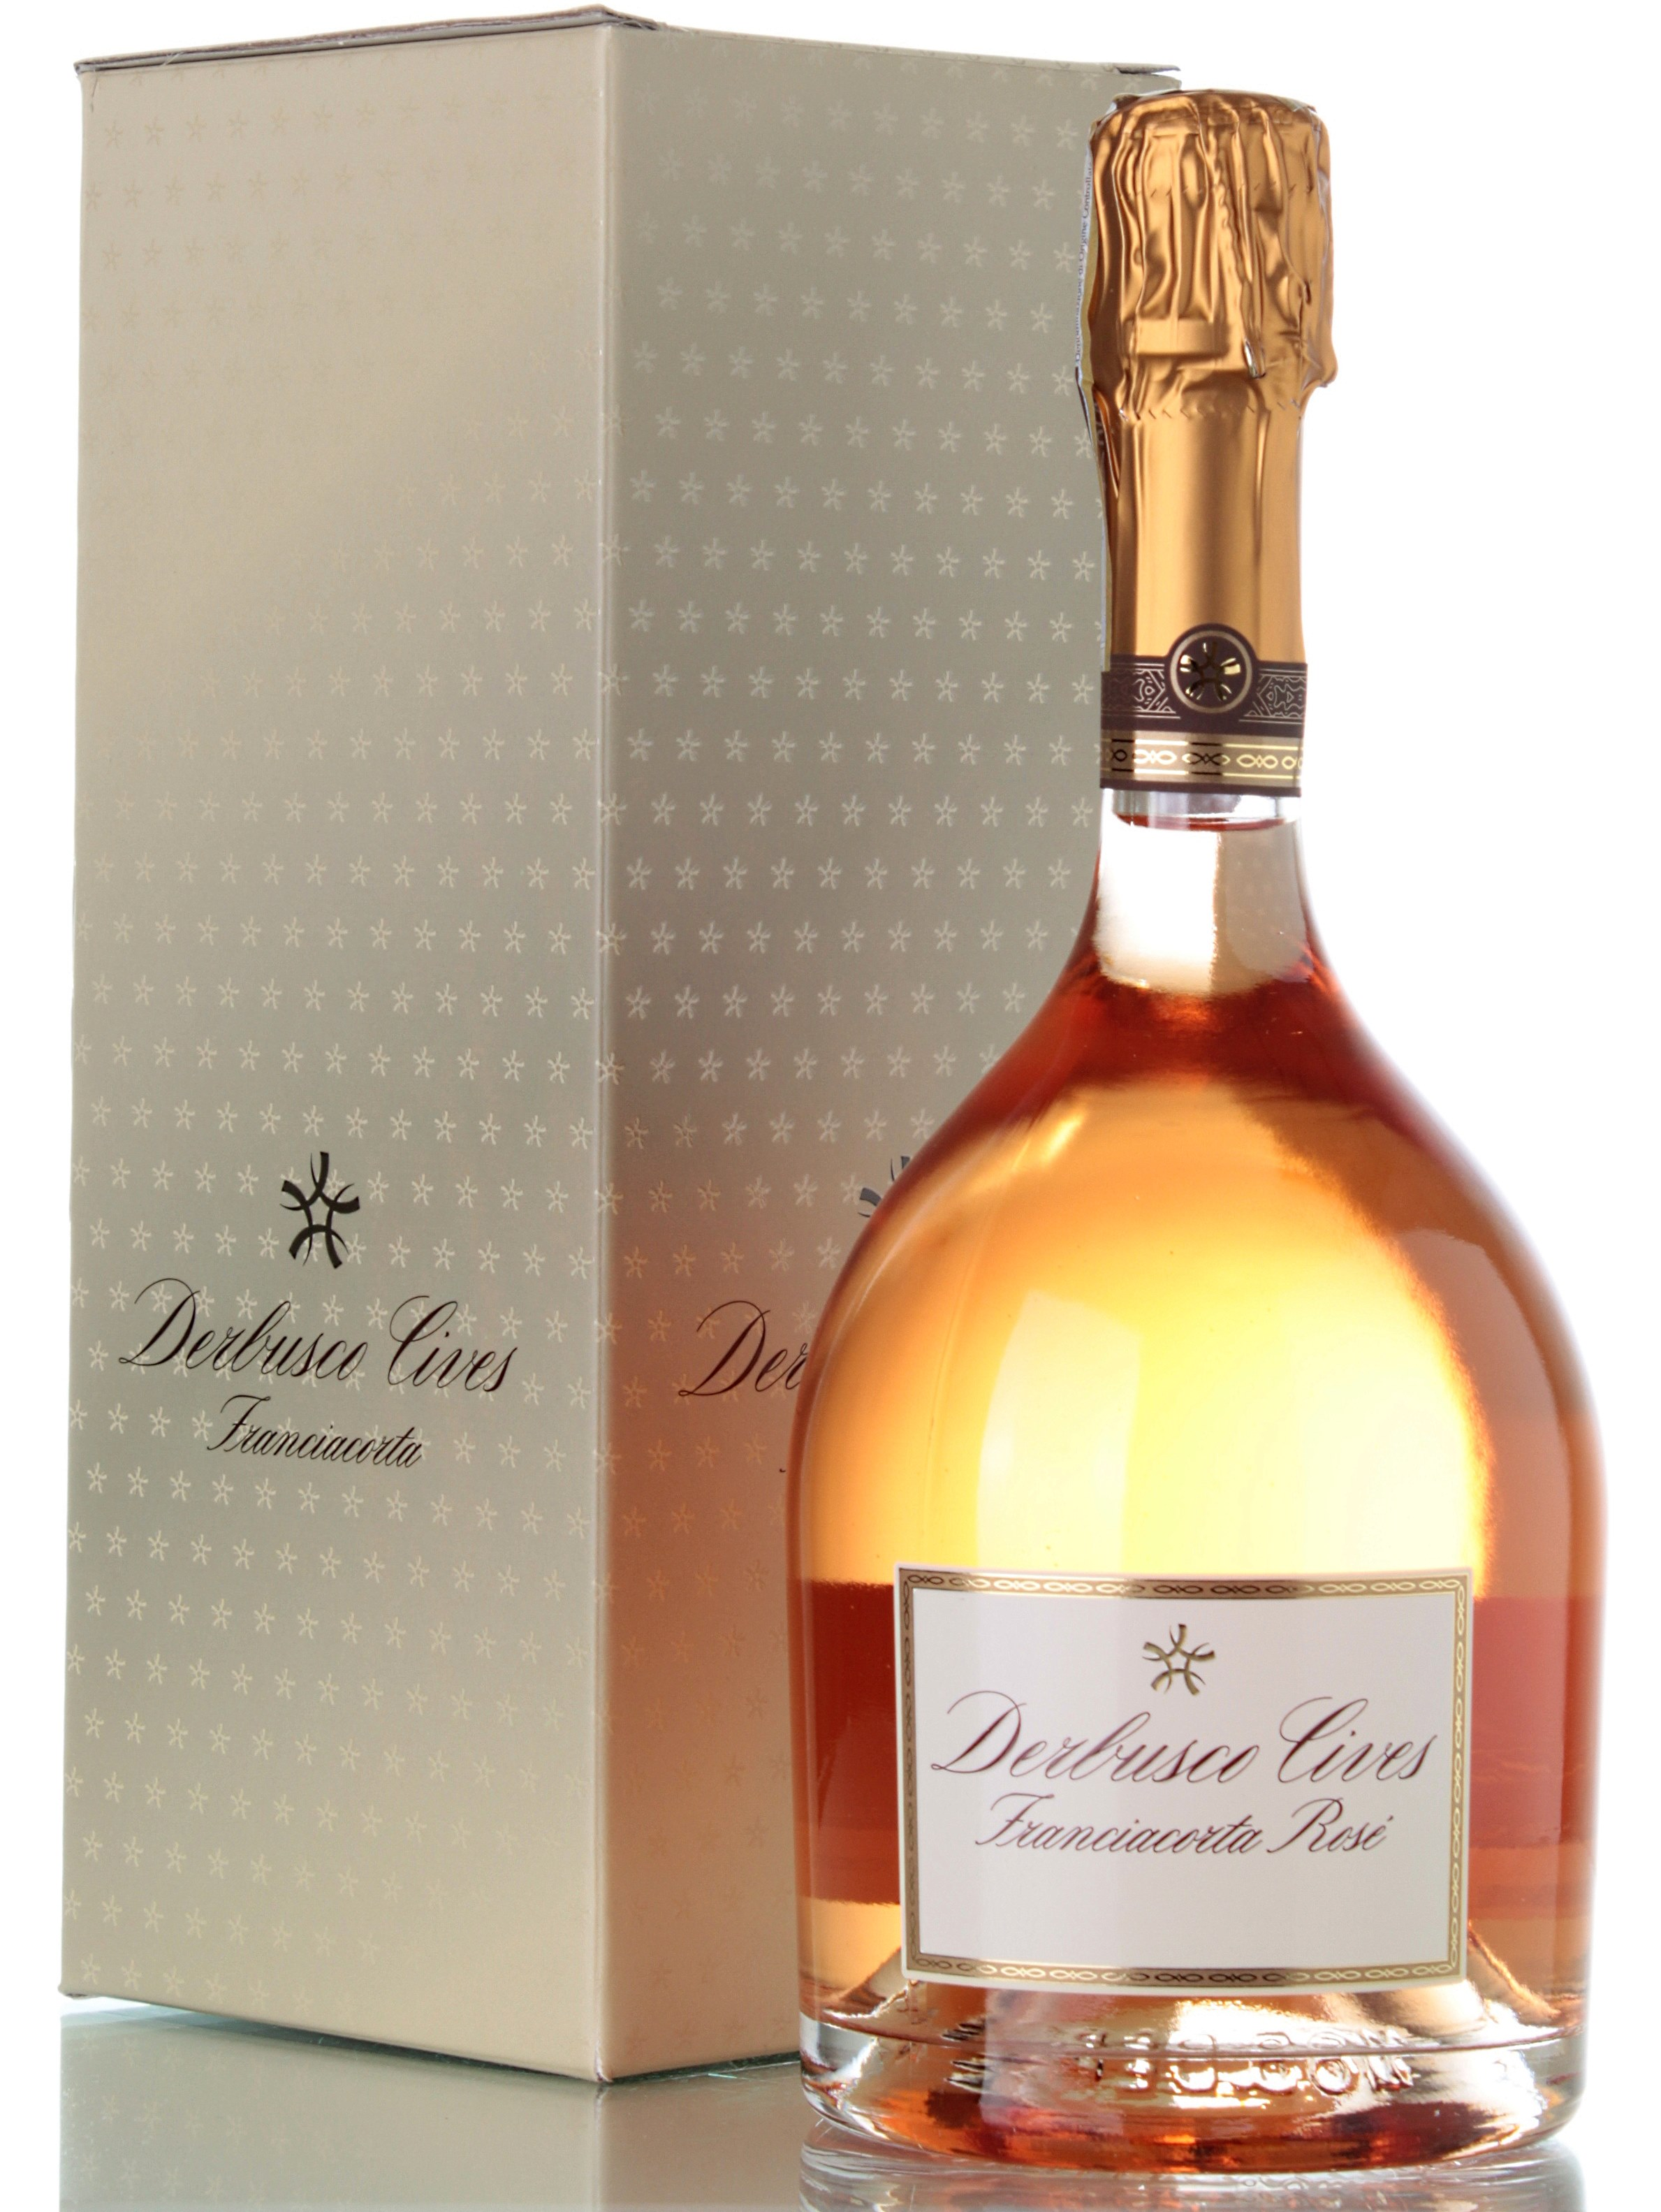 DERBUSCO CIVES FRANCIACORTA ROSE MILLESIMATO 2011 IN ASTUCCIO